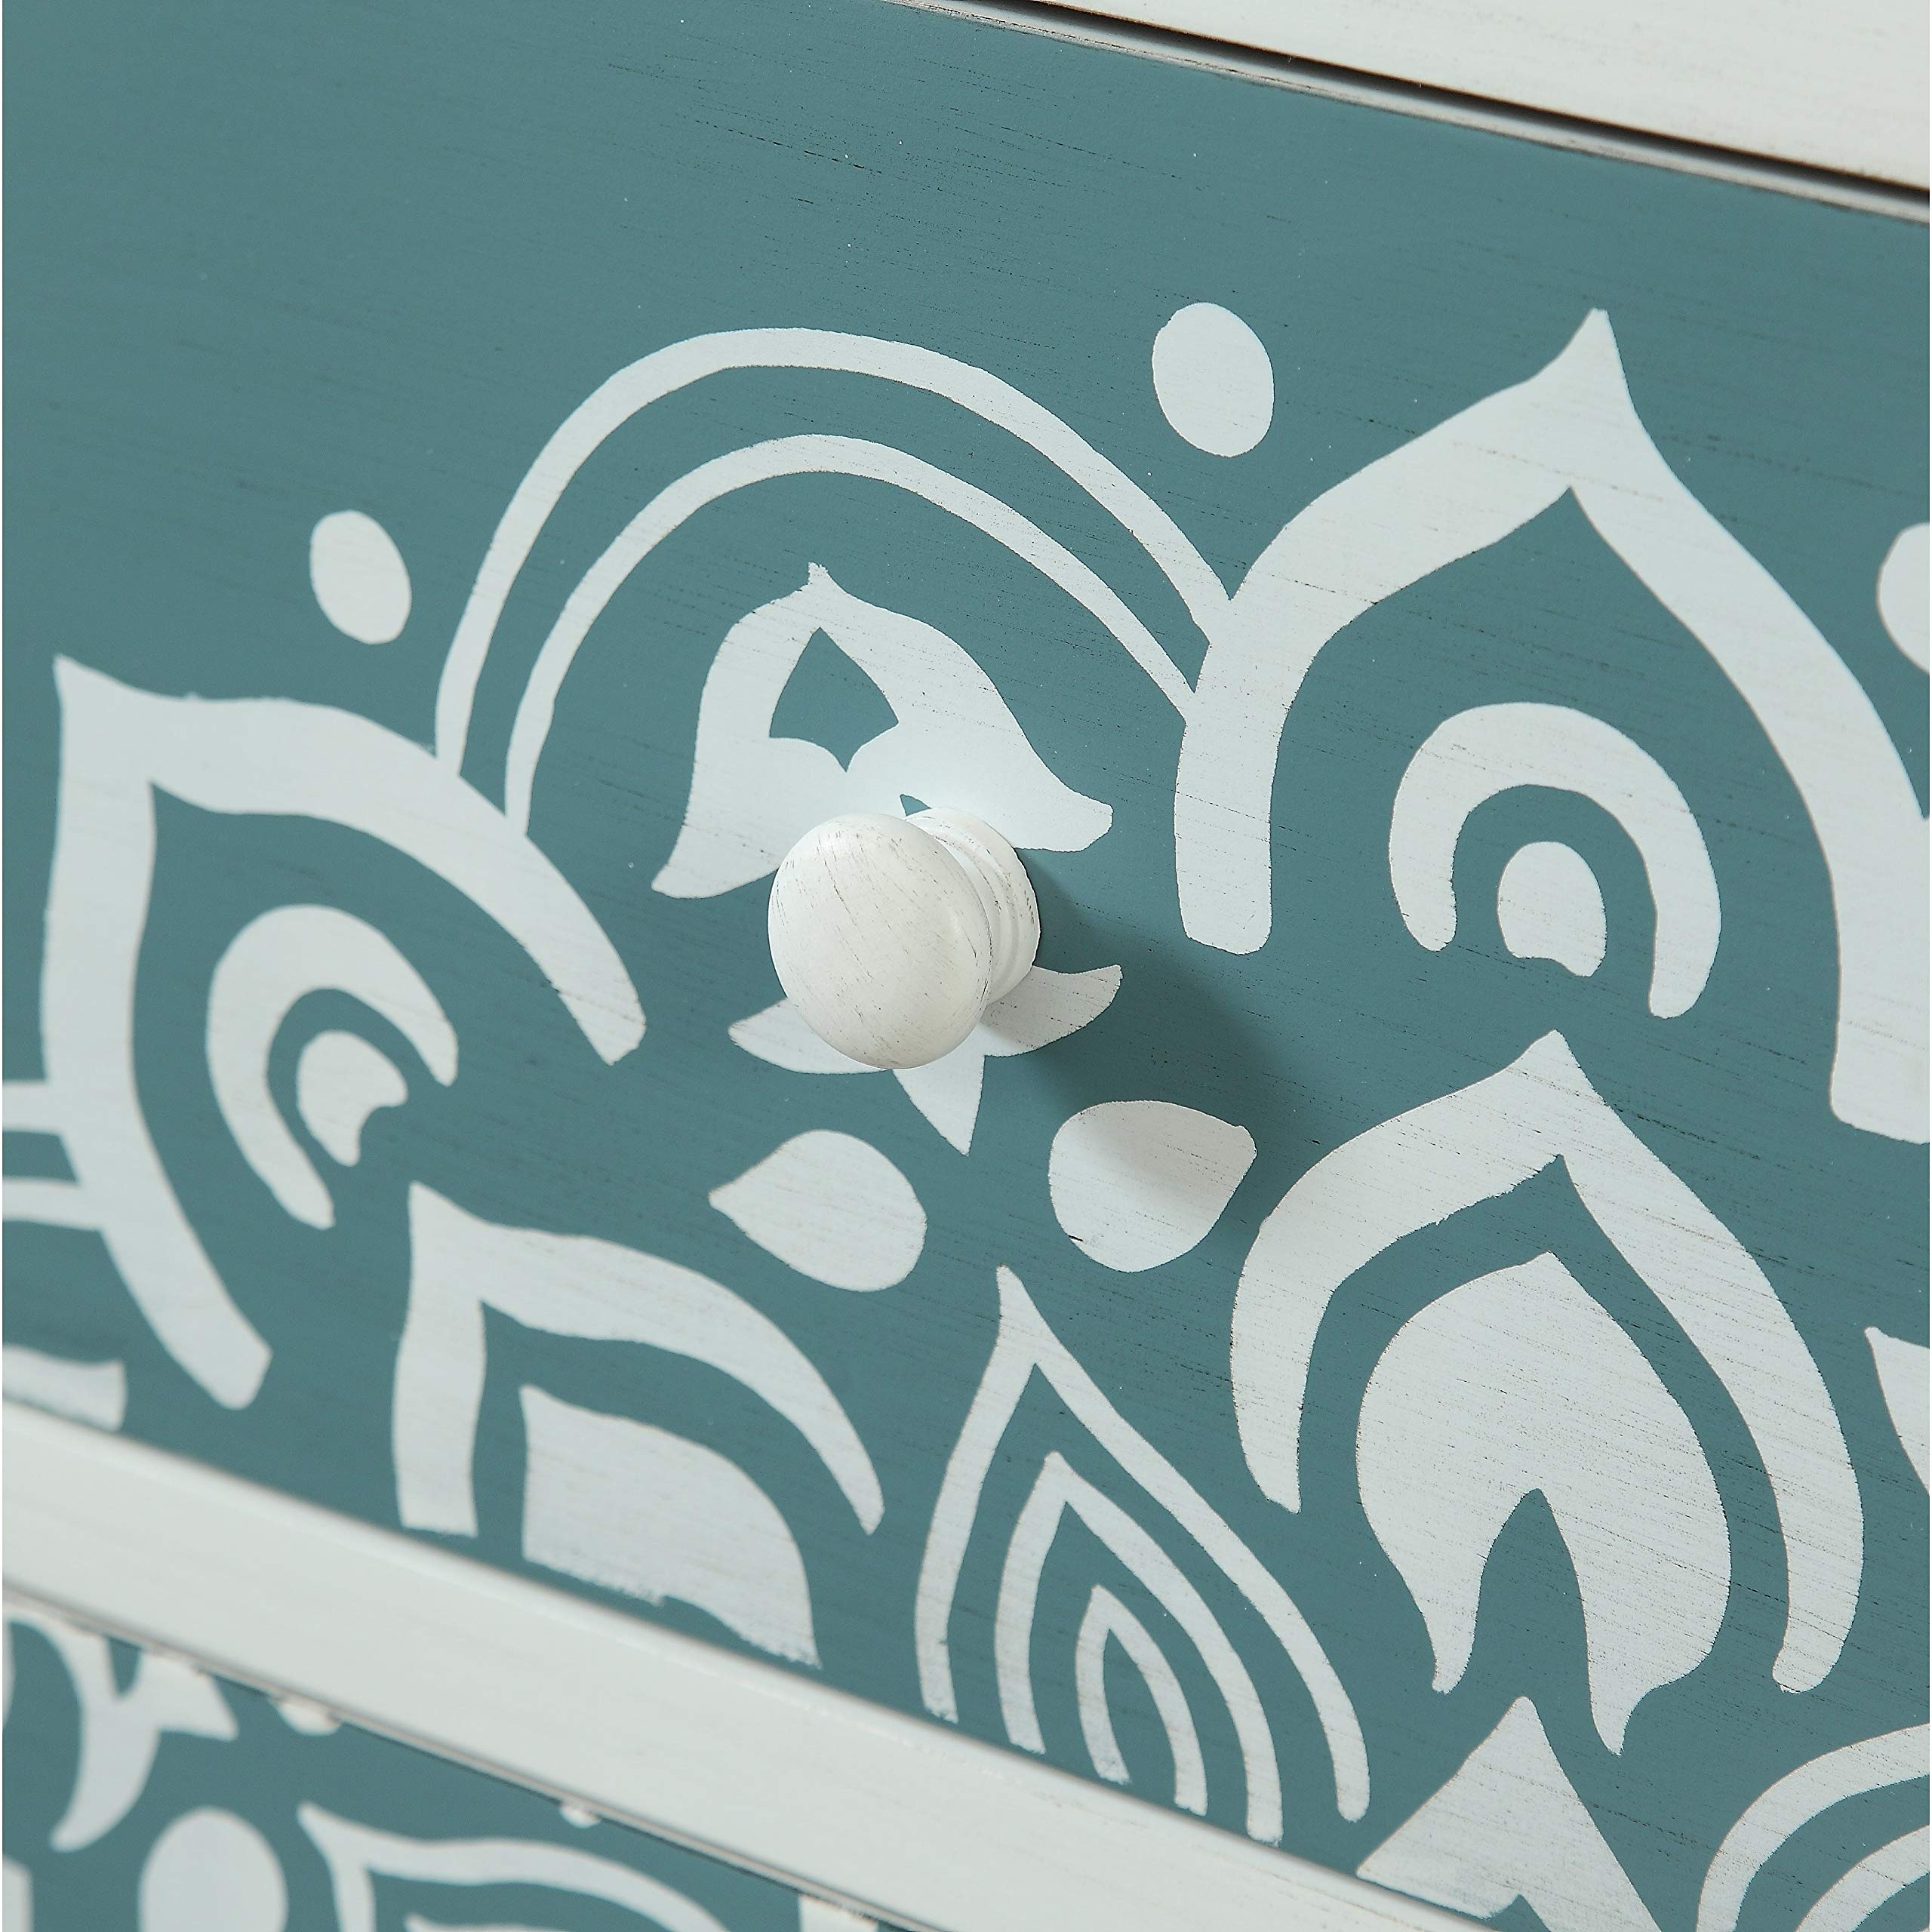 Three Drawer Chest White Modern Contemporary Rectangle MDF Painted Drawers by Unknown